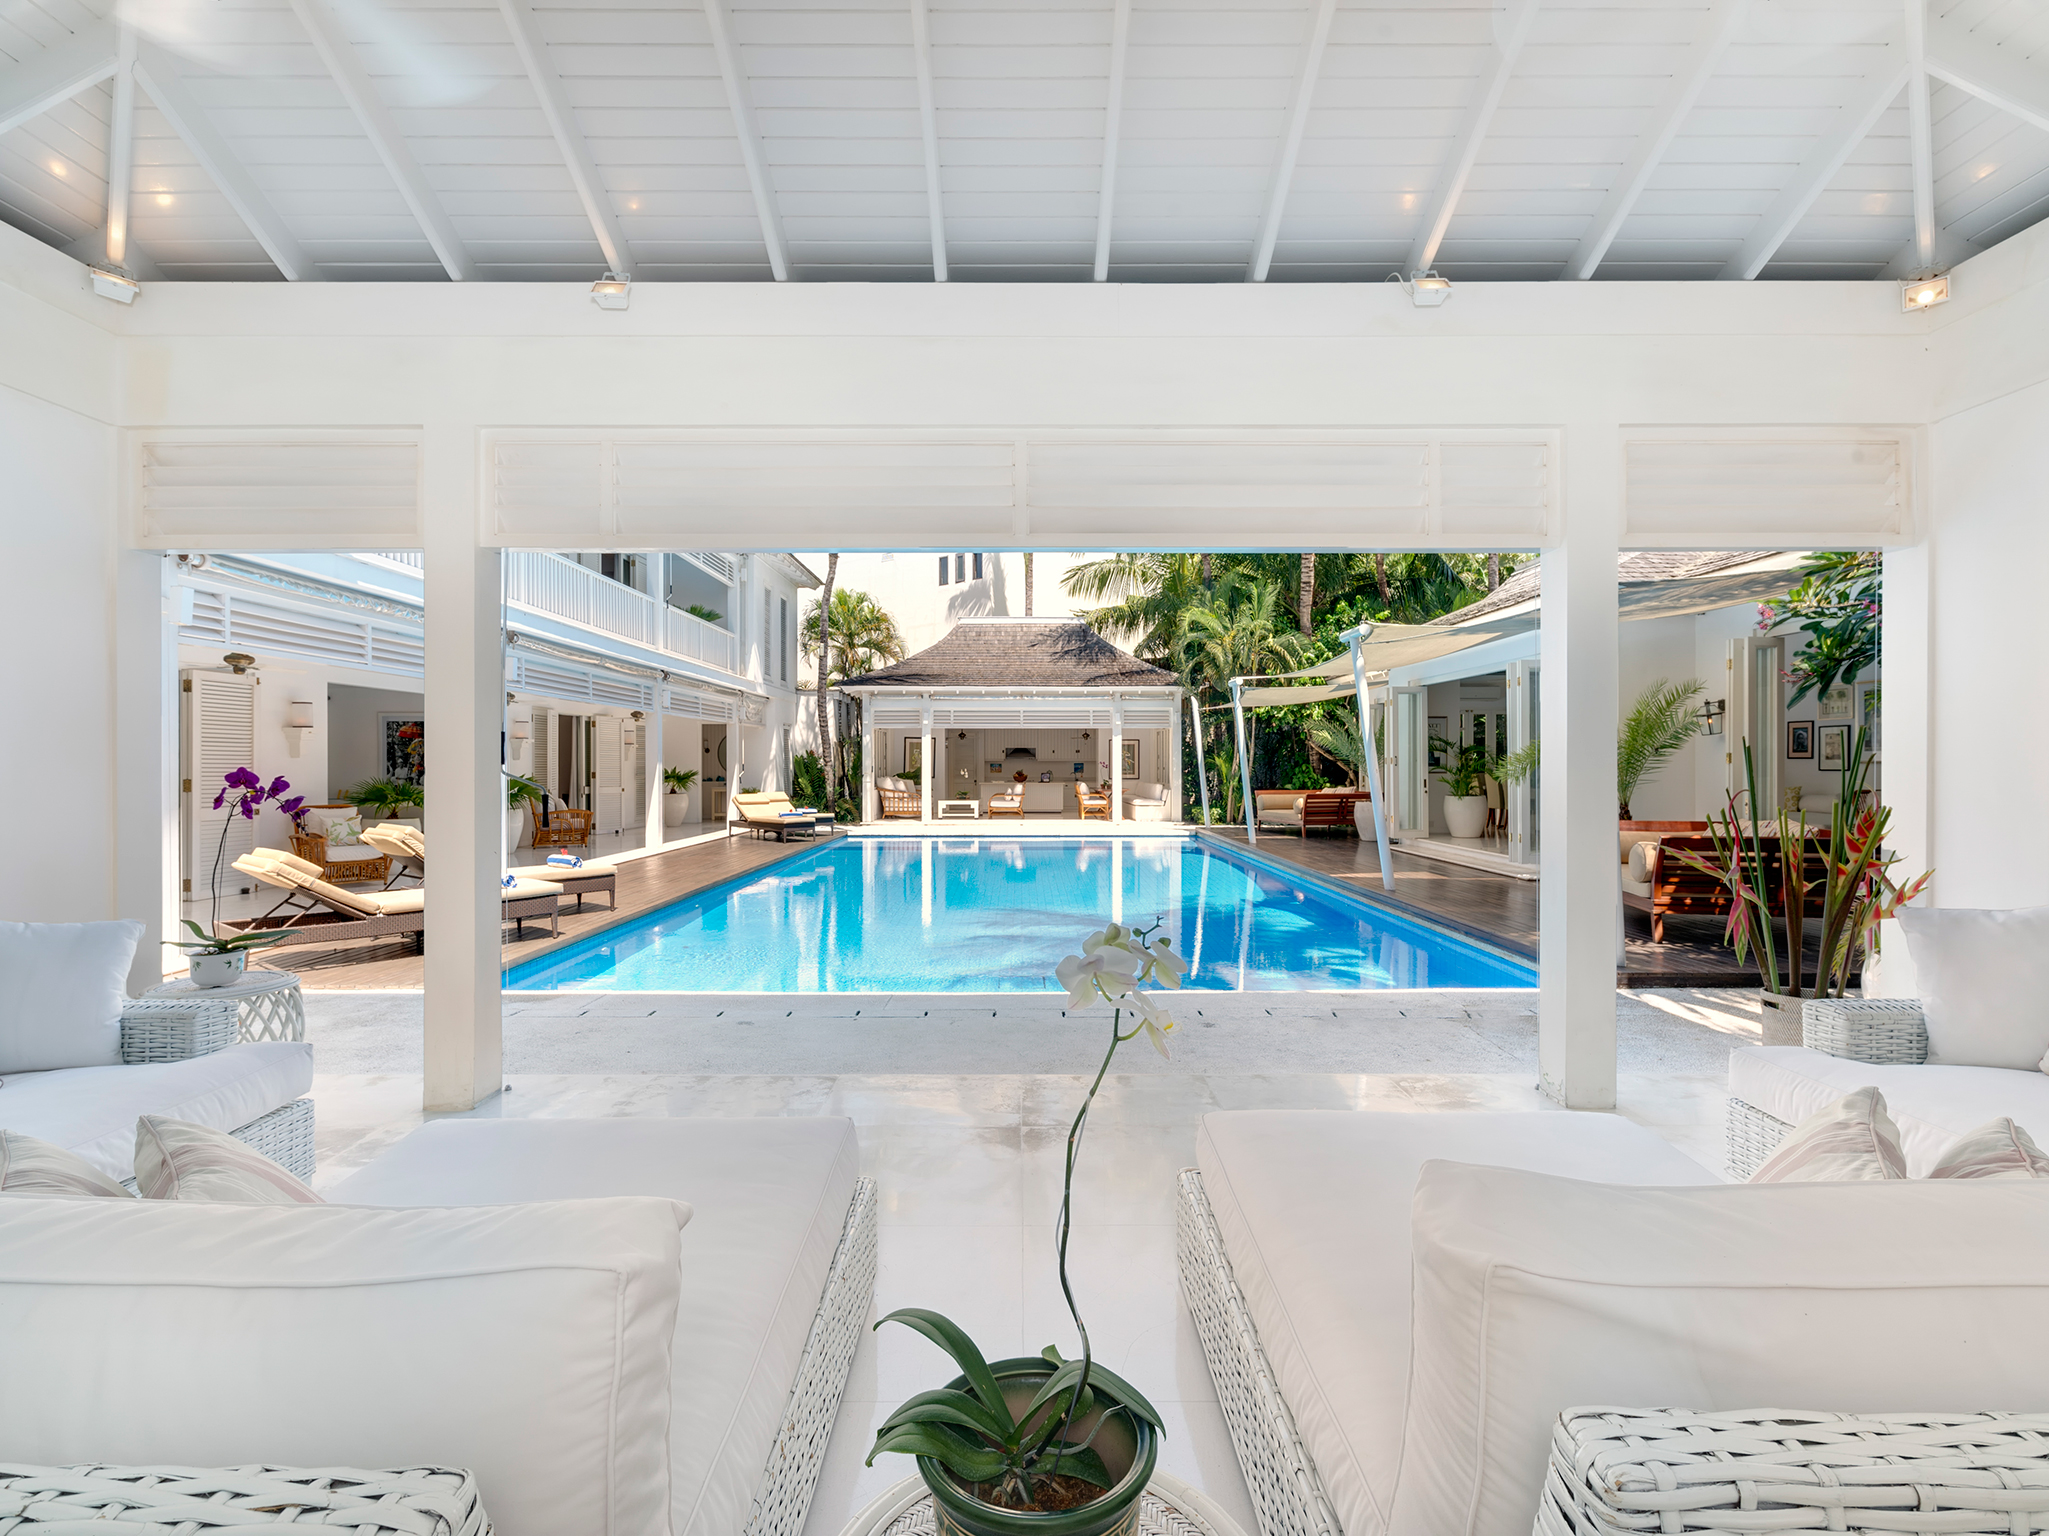 3-villa-lulito-living-room-view-of-the-pool